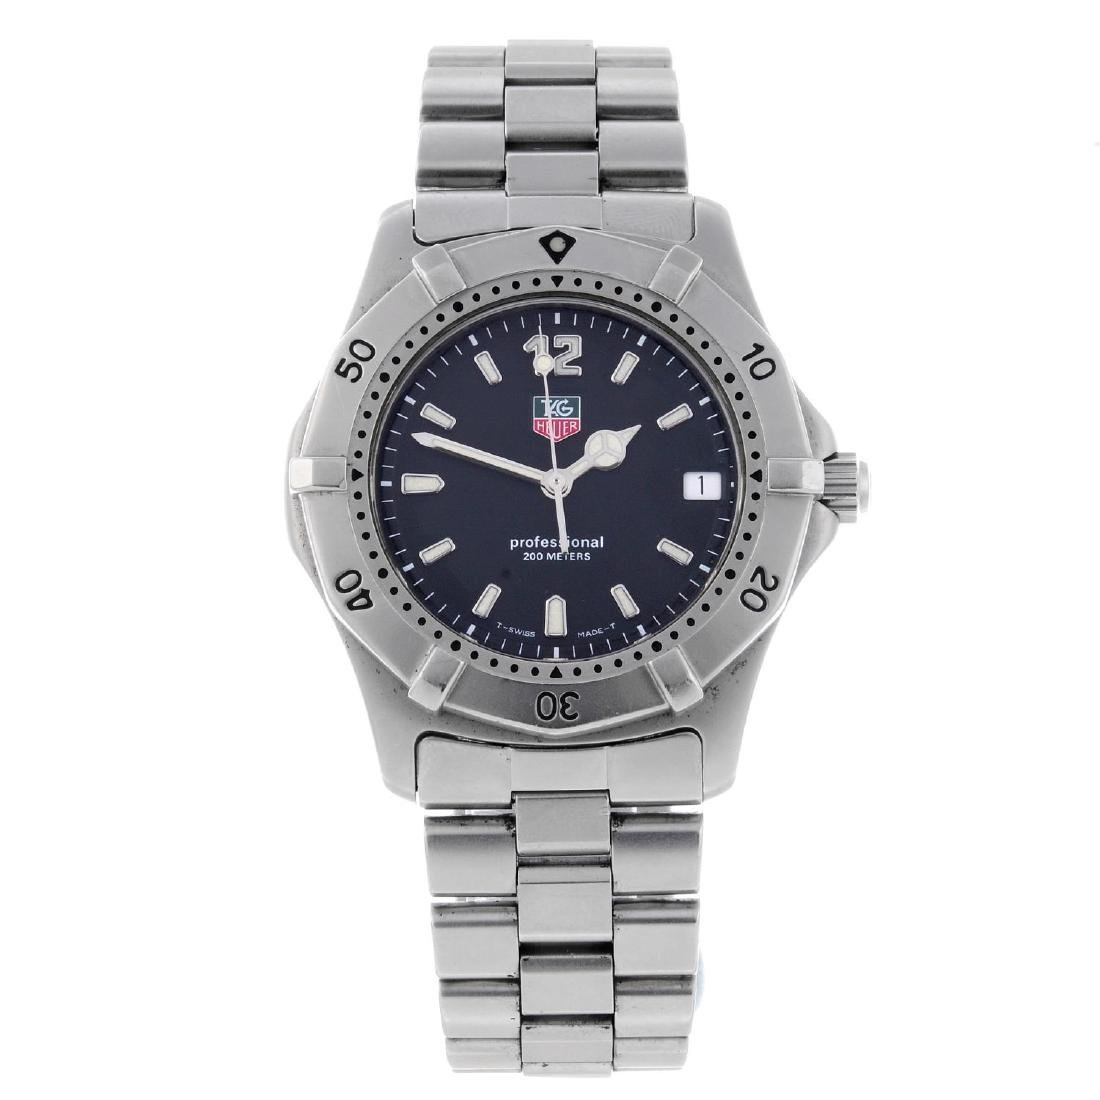 TAG HEUER - a gentleman's 2000 Series bracelet watch.